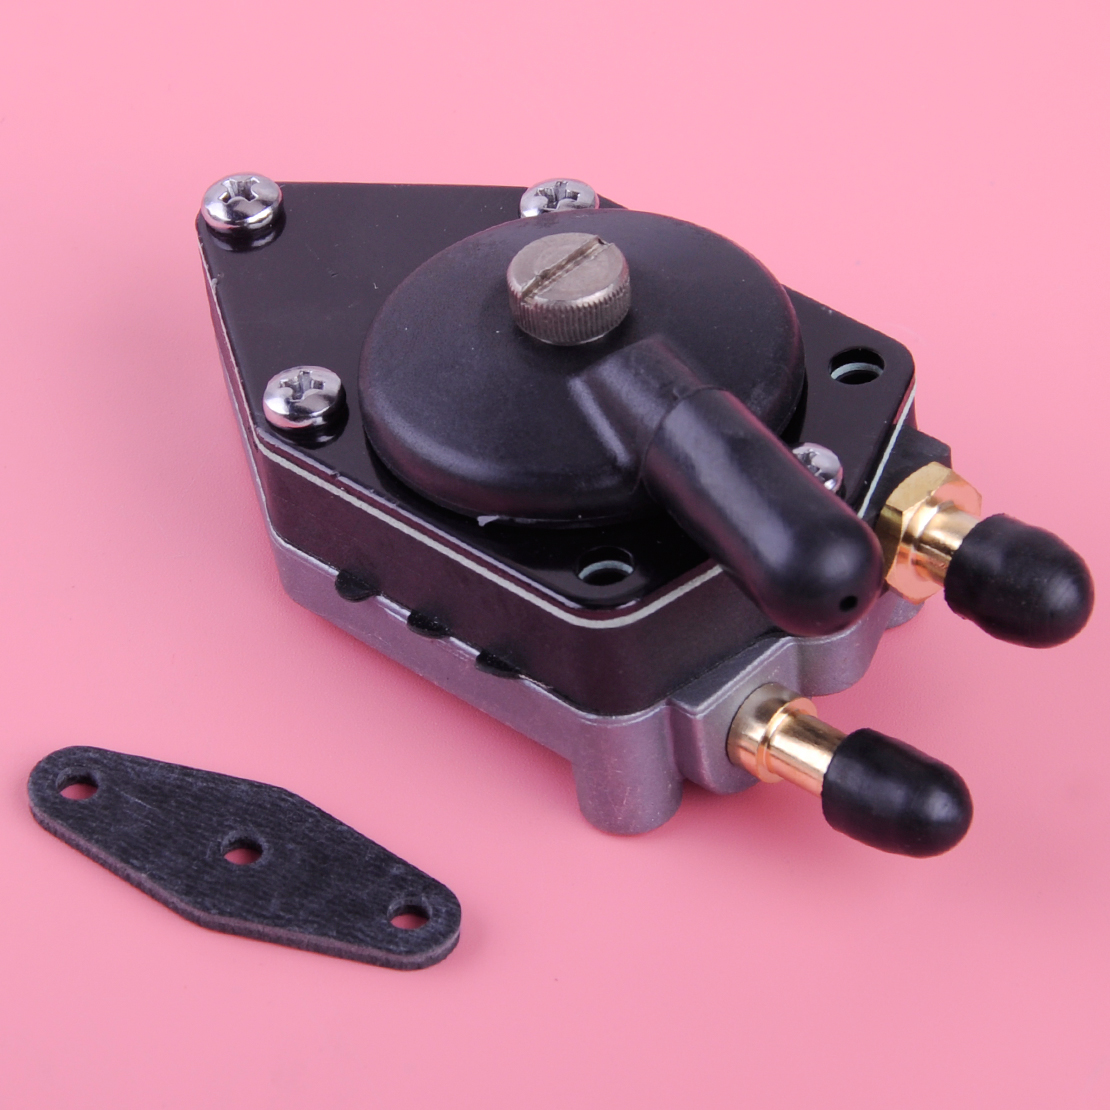 DWCX Fuel Pump with Gasket 438559 385784 433390 fit for Johnson Evinrude 25 140HP Outboard Motors